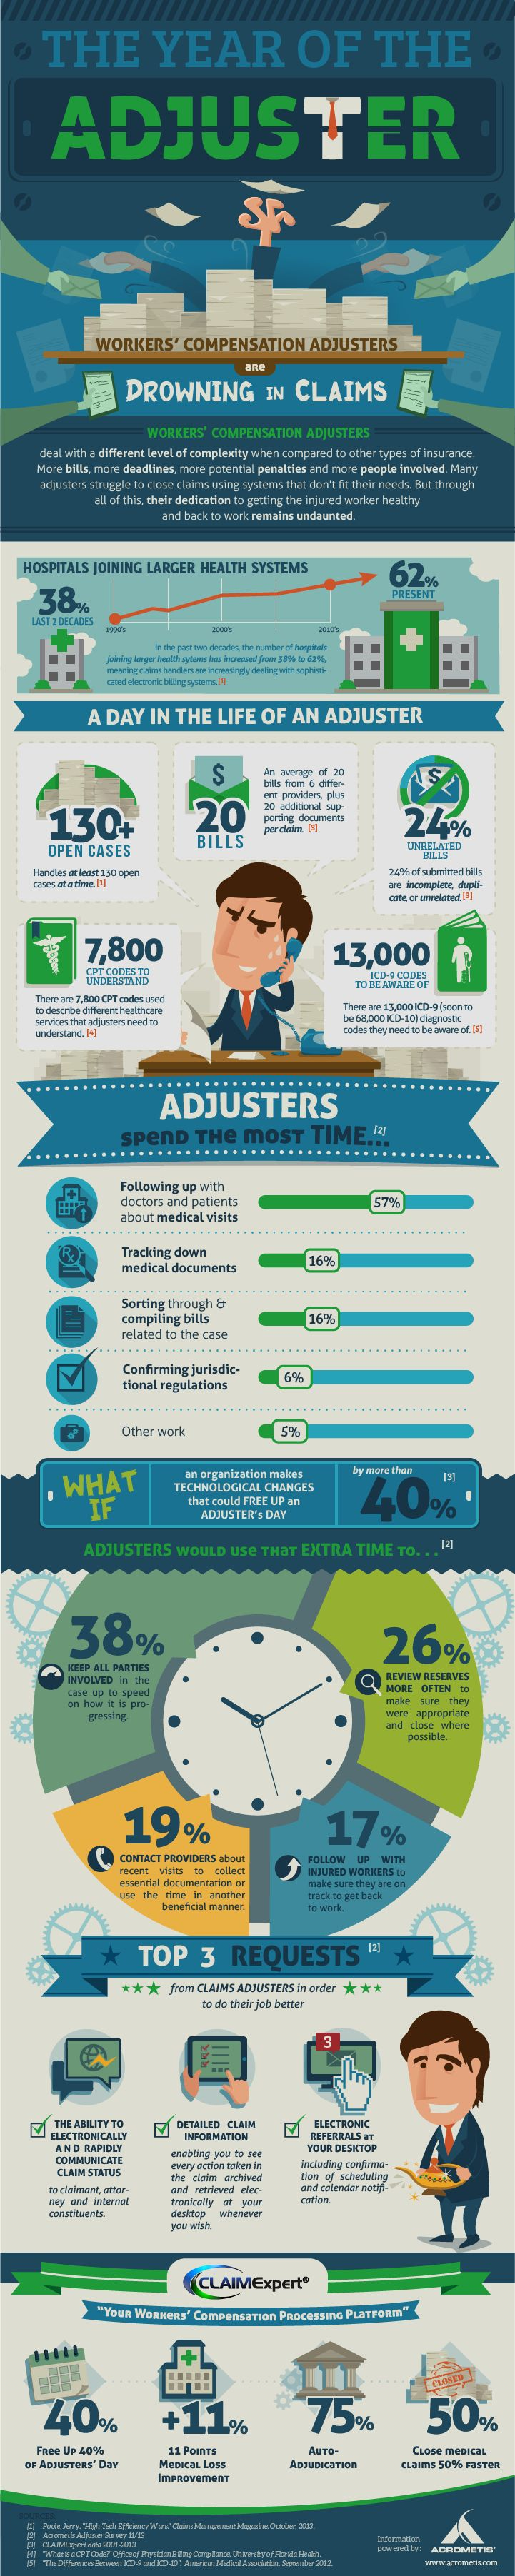 Worker's Compensation Adjusters: Drowning in claims [Infographic]